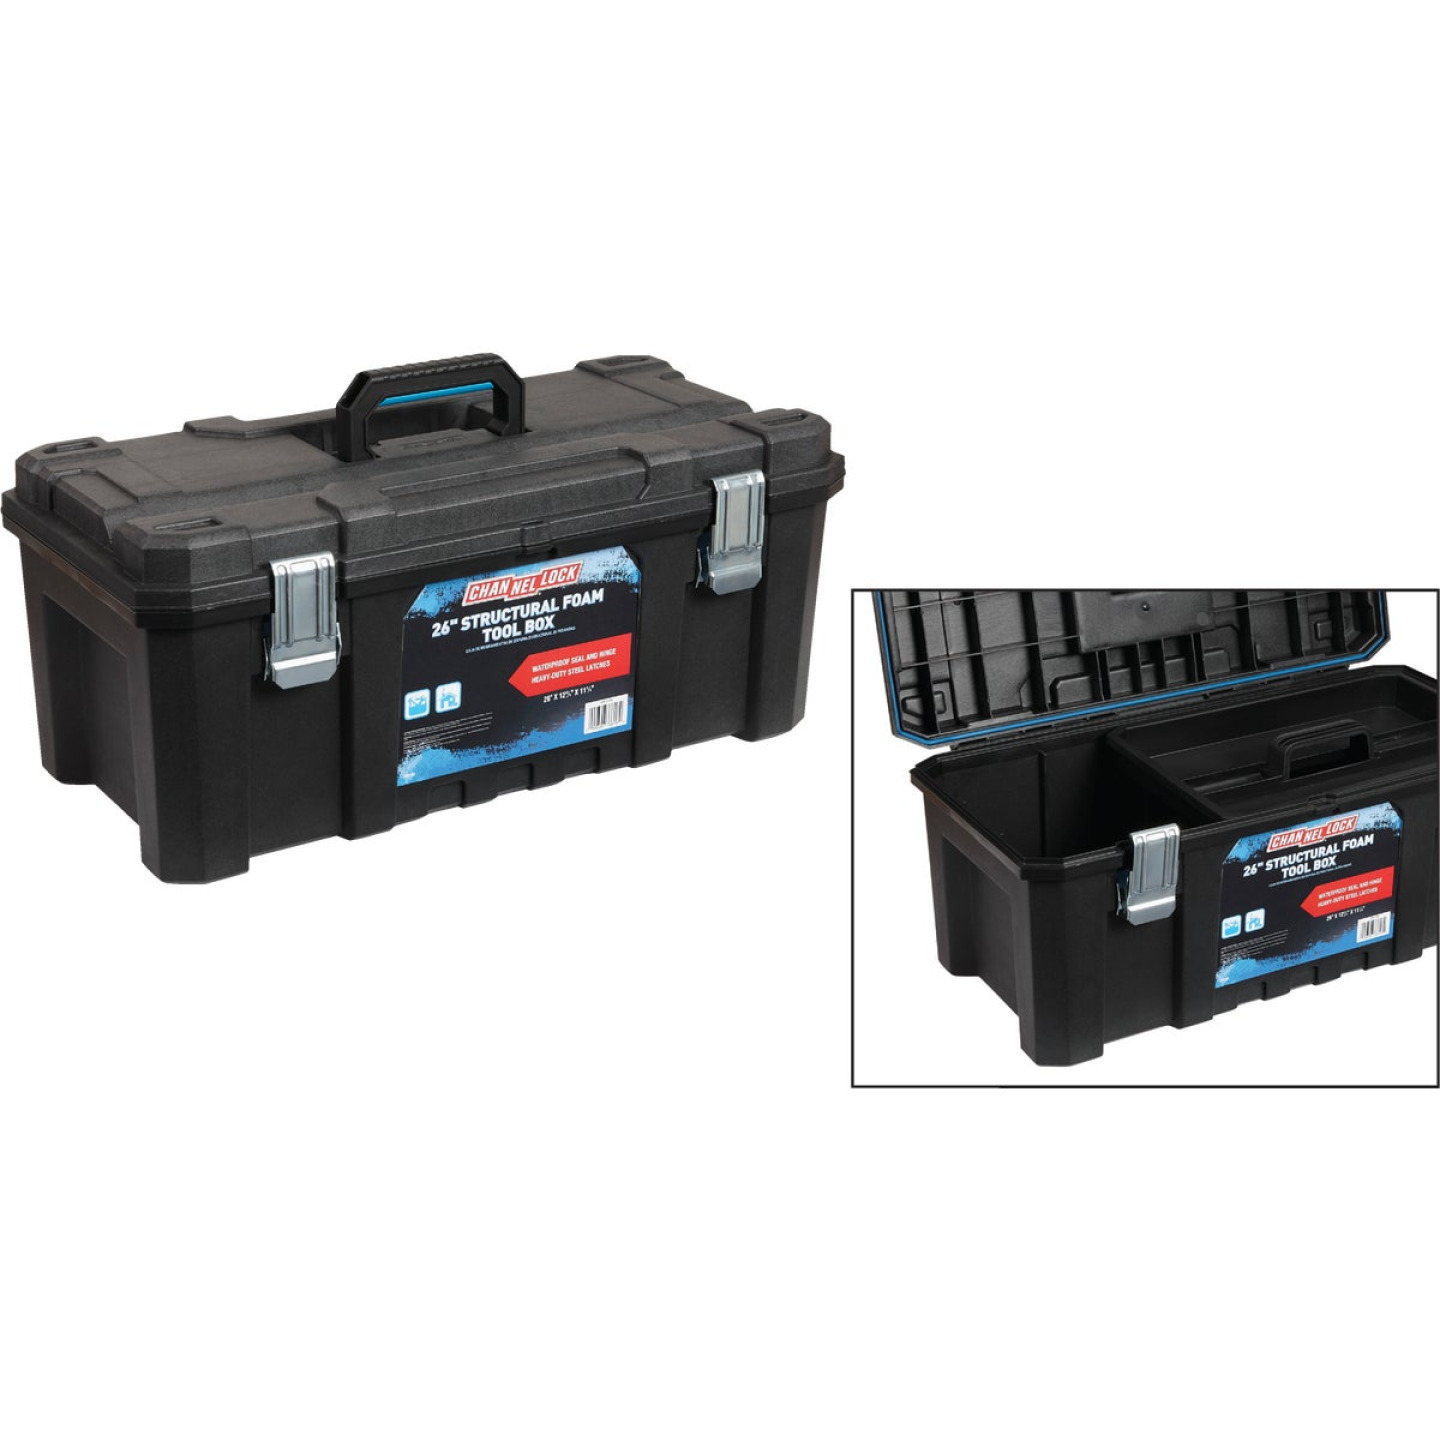 Channellock 26 In. Structural Foam Toolbox Image 1